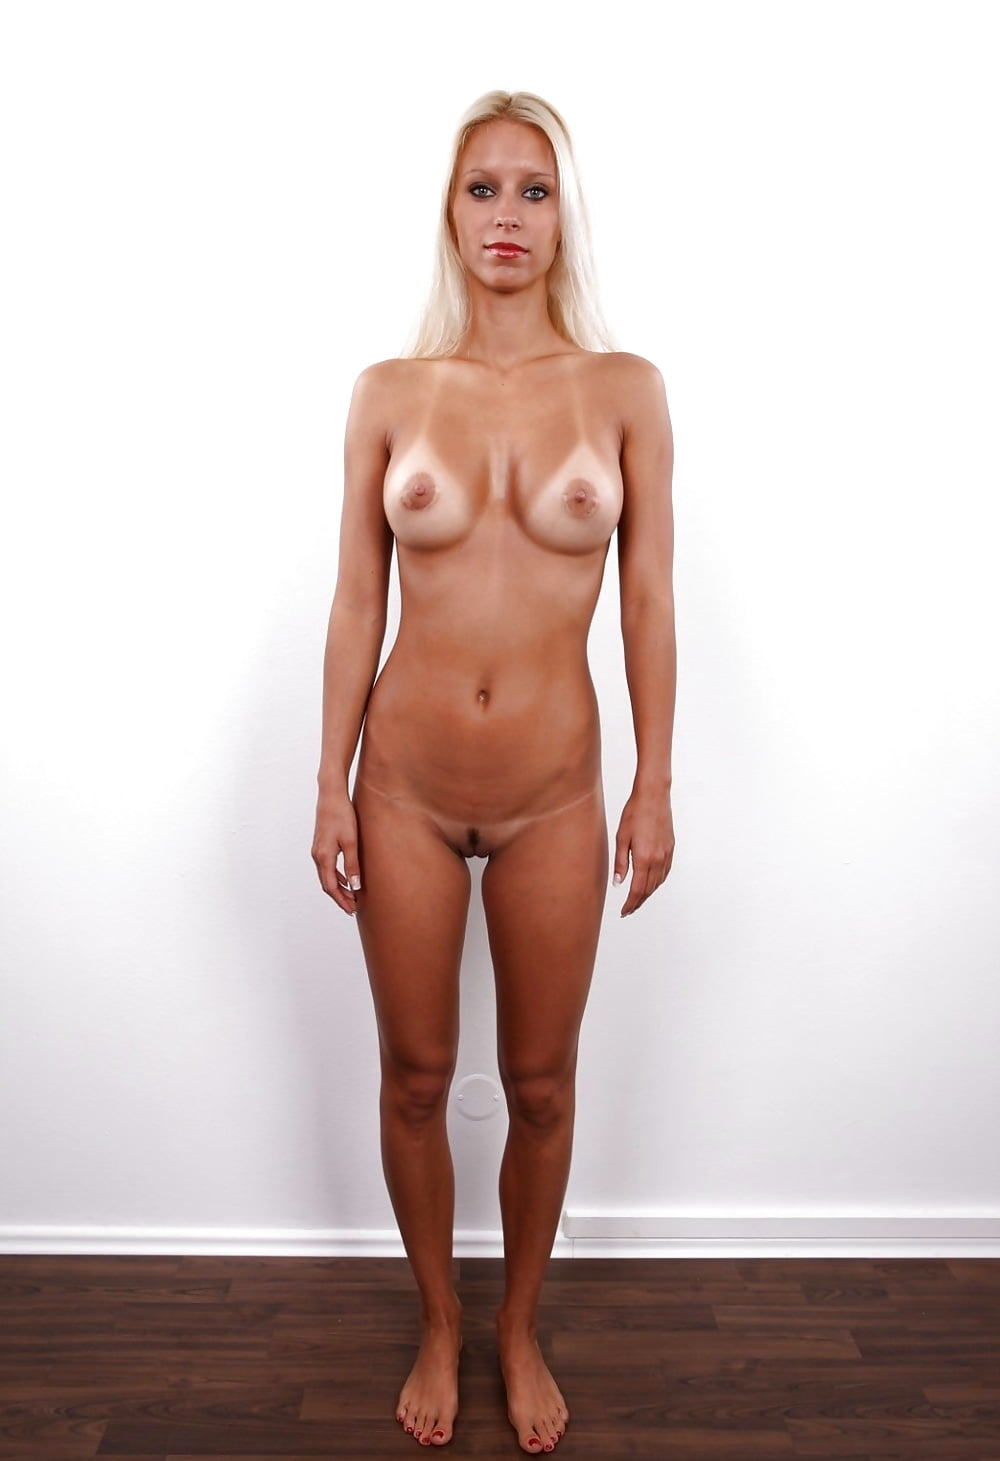 Czech women beautiful nude — img 6